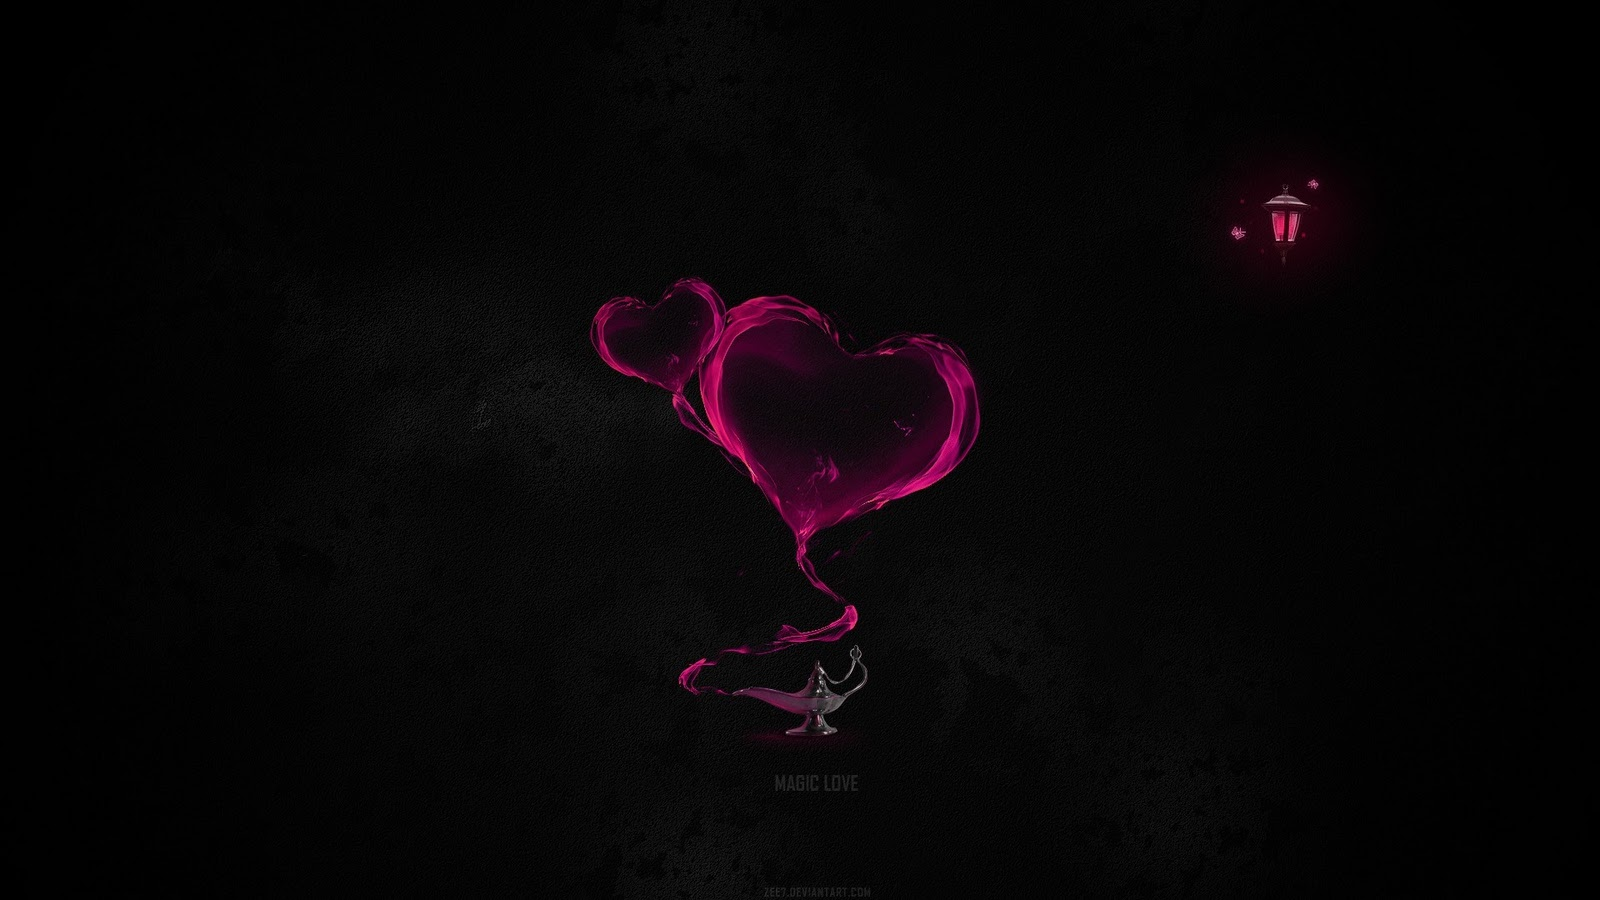 hd love wallpaper - wallpapersafari